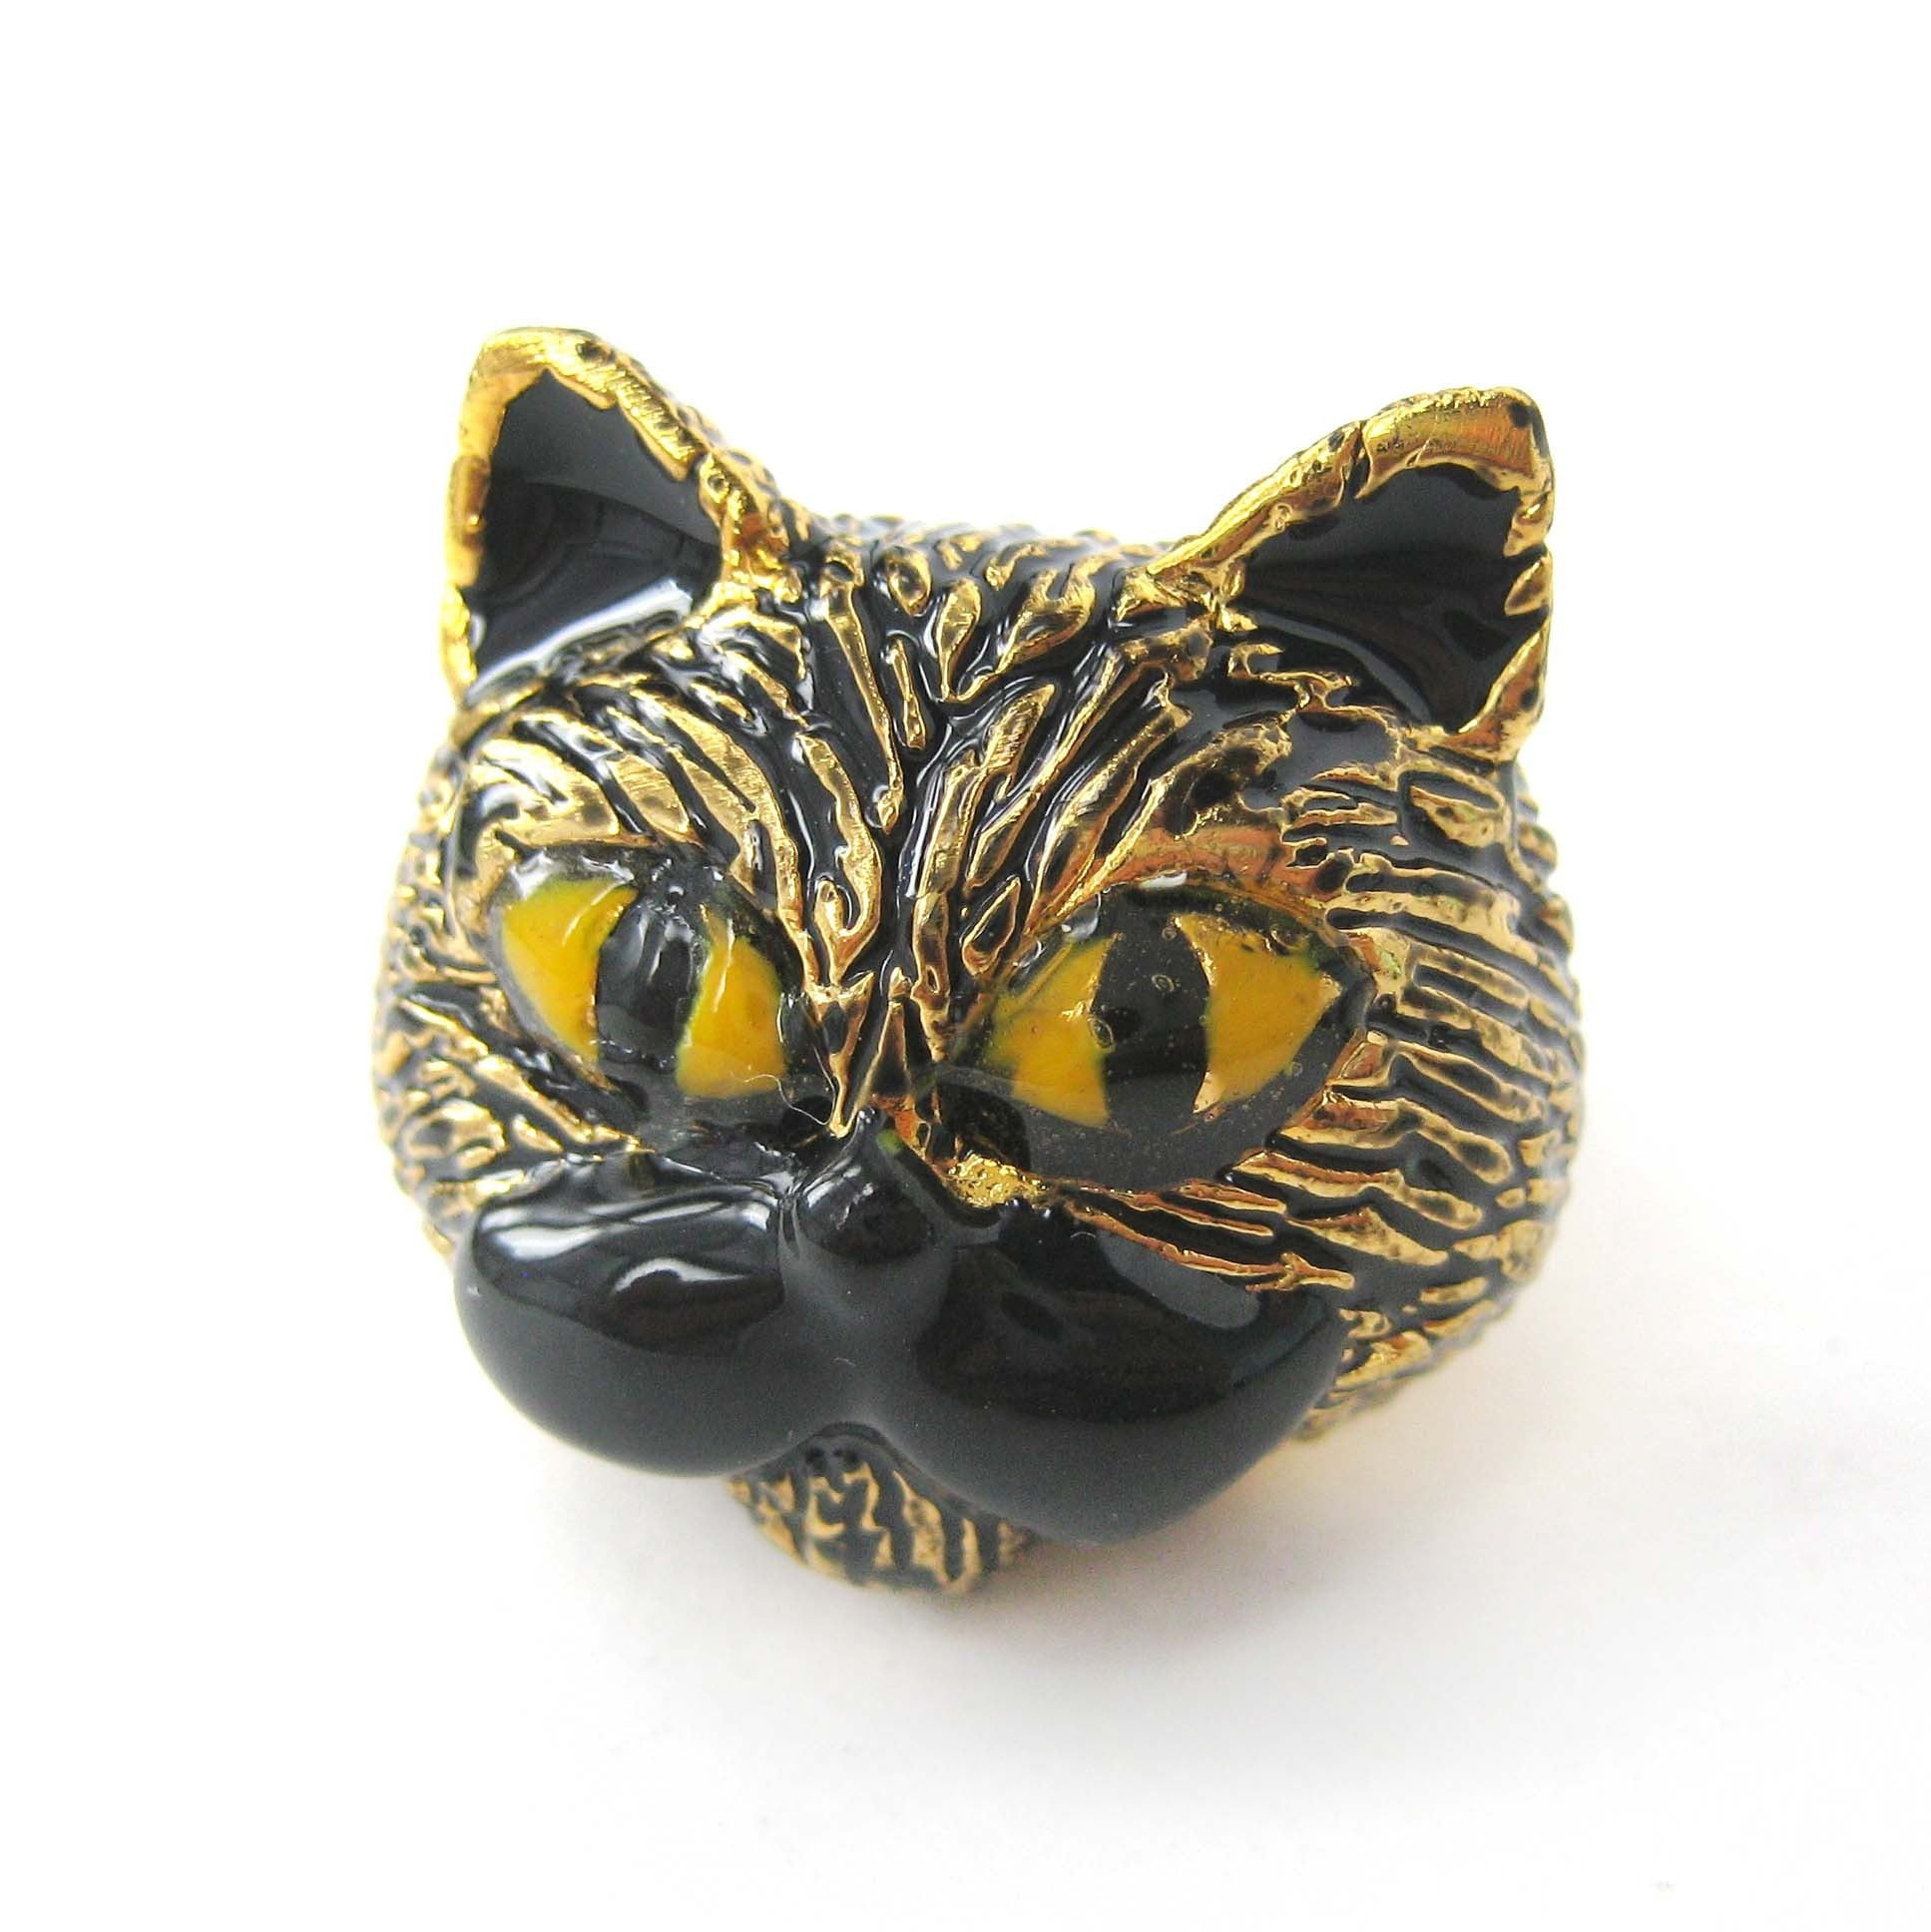 kitty-cat-mustache-enamel-animal-ring-in-black-us-size-6-5-limited-edition